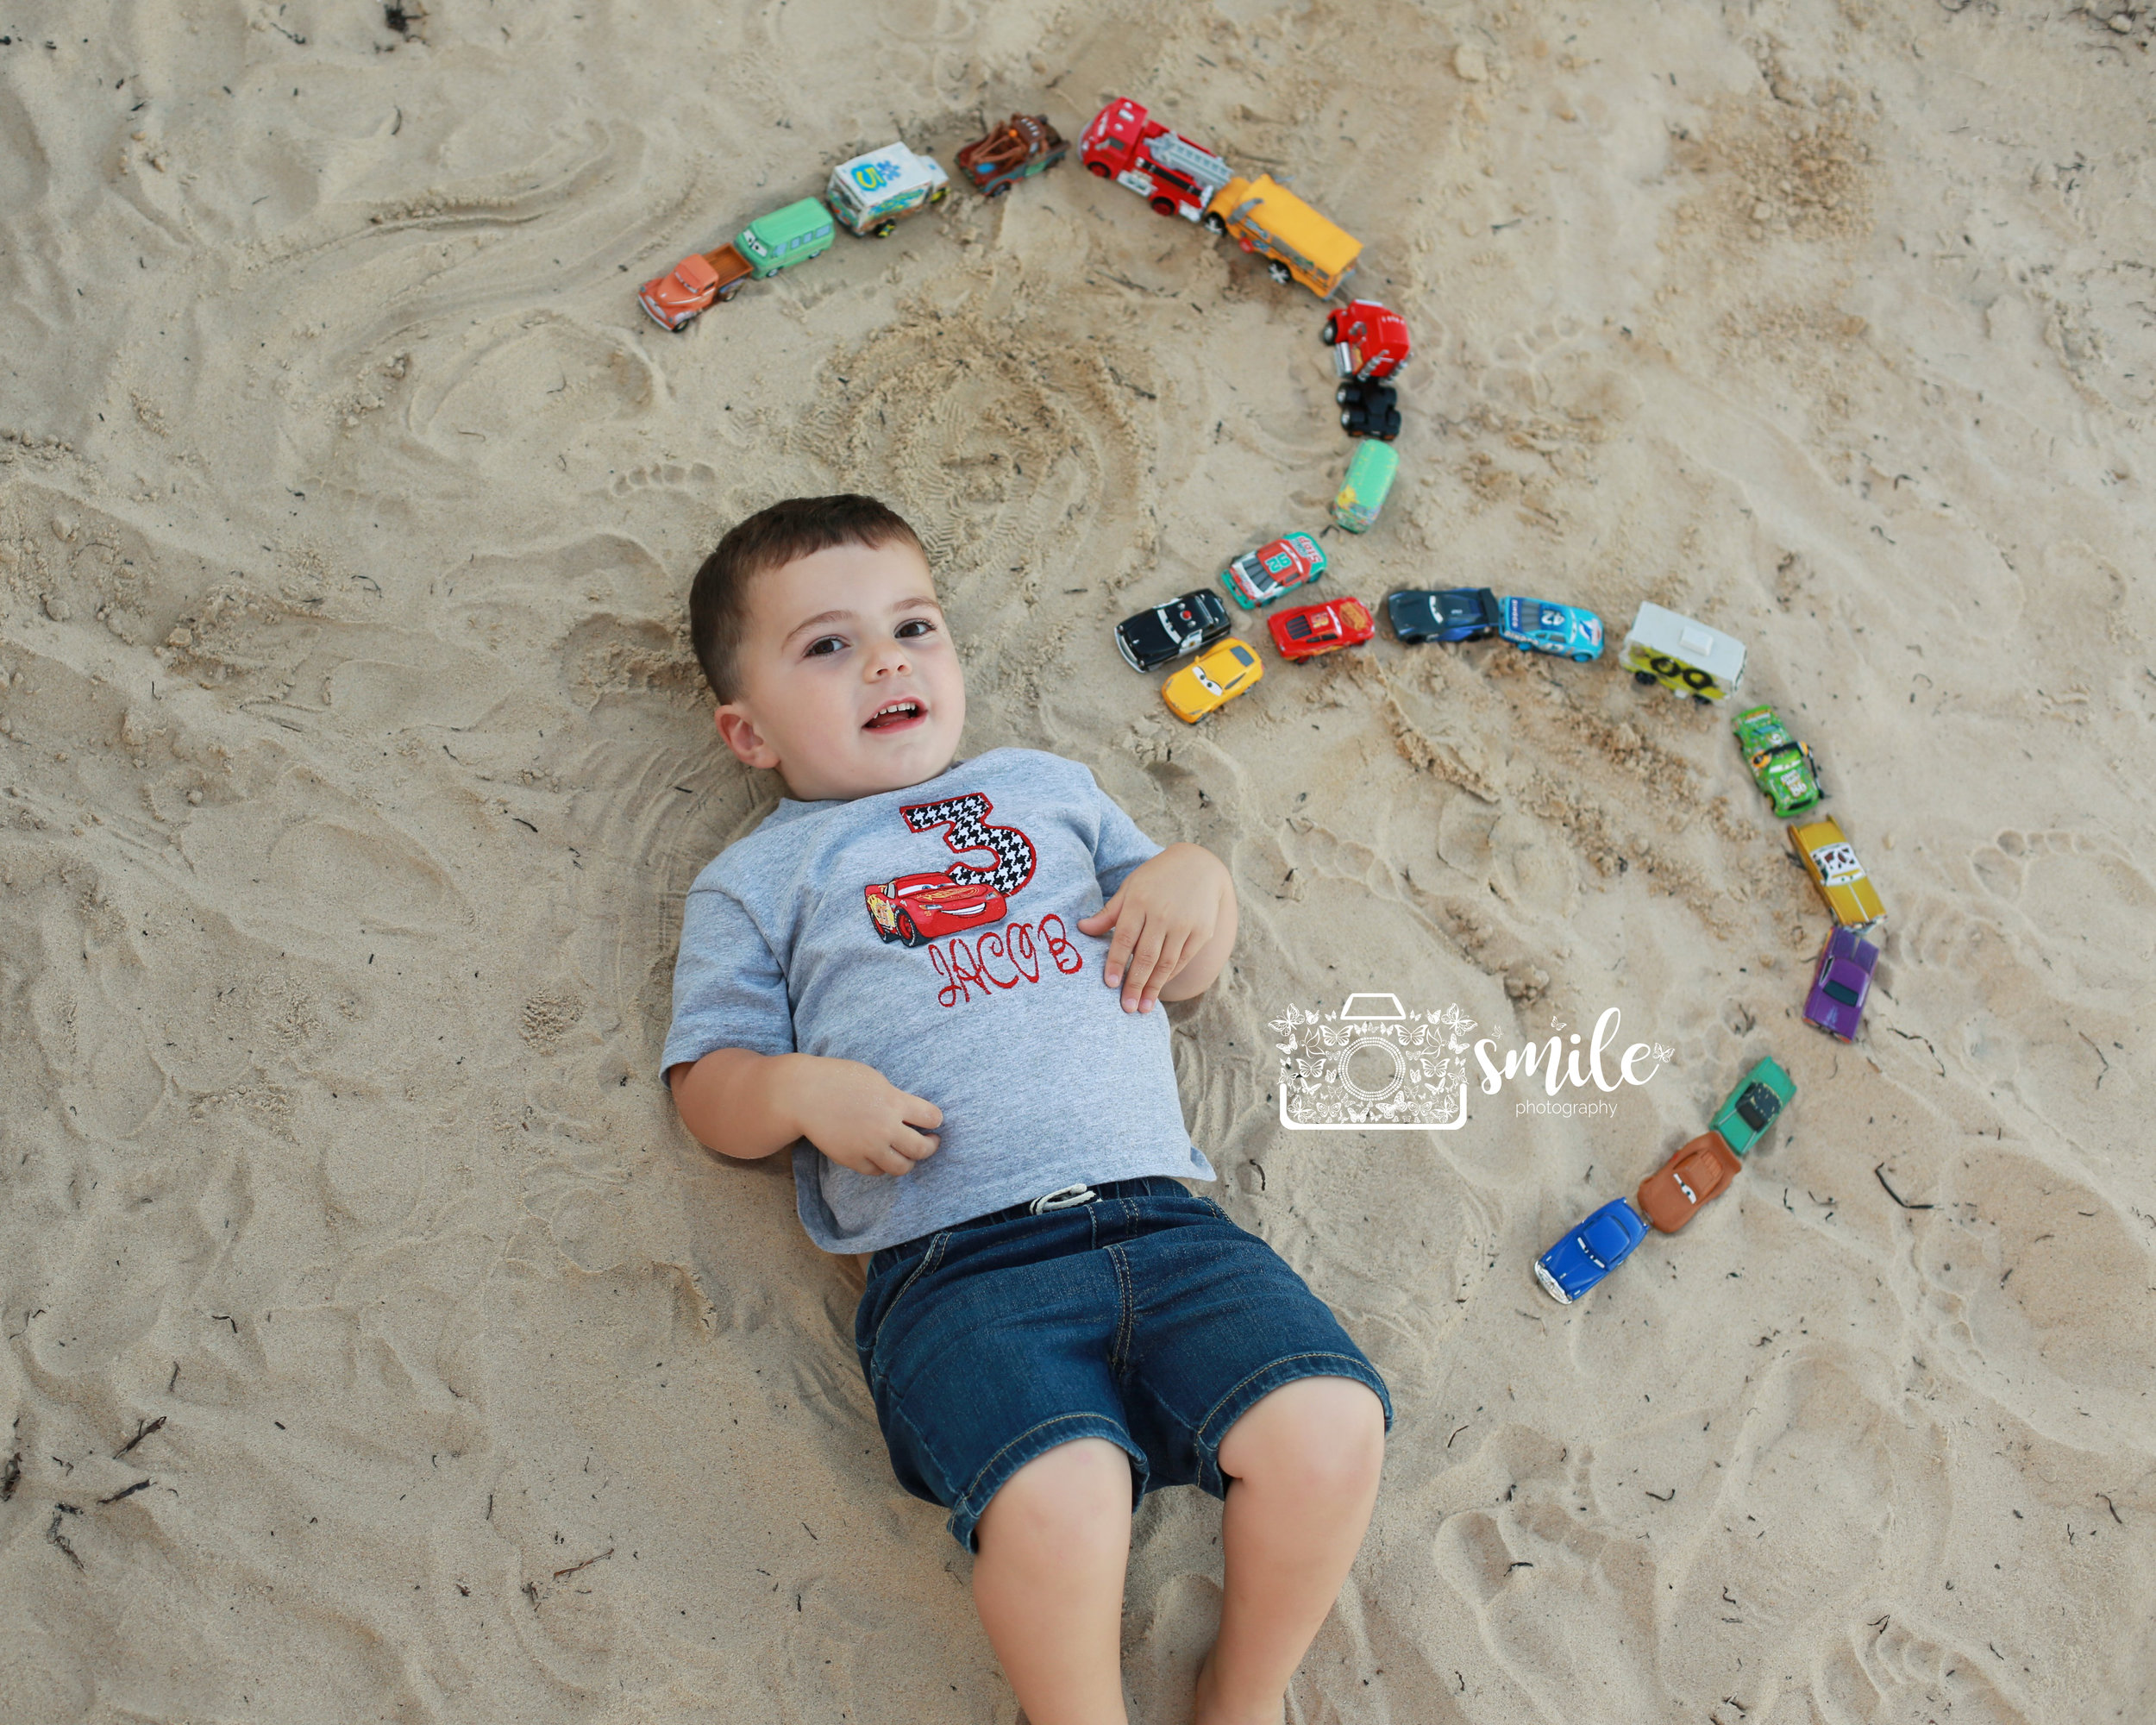 Beach Birthday Beach Maternity Jersey Shore Child Photographer